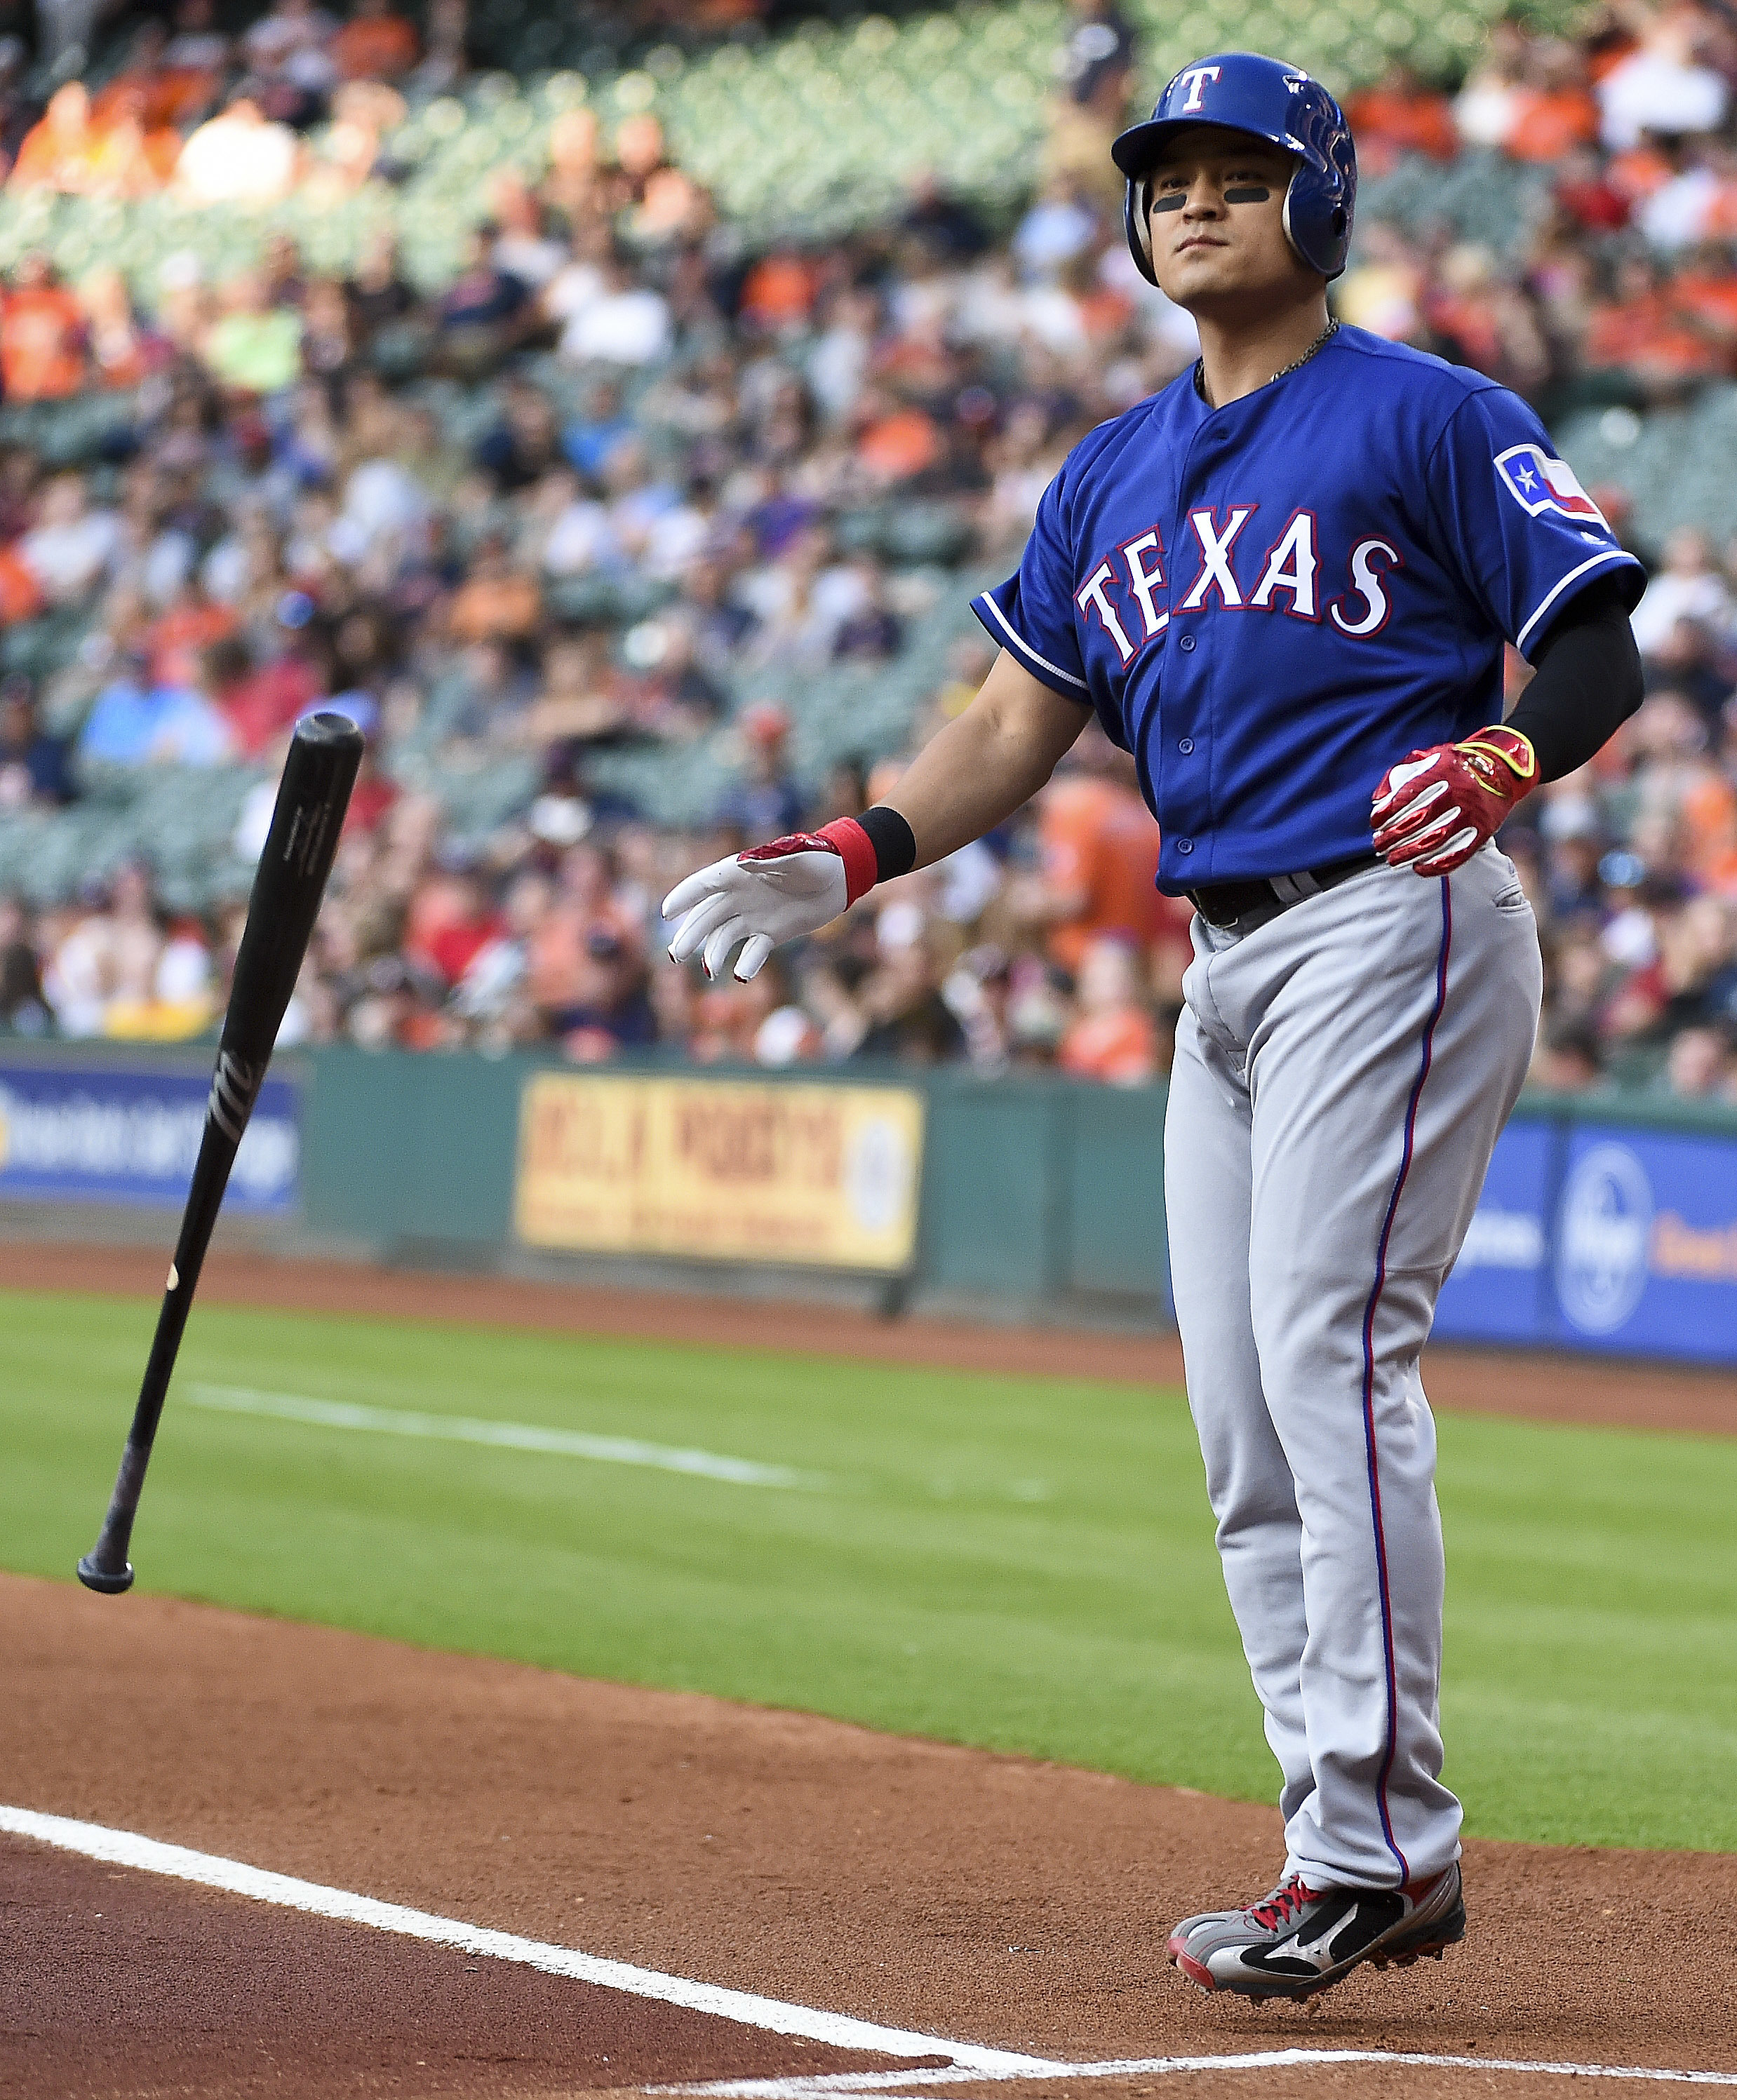 Texas Rangers' Shin-Soo Choo tosses his bat after walking in the first inning of a baseball game against the Houston Astros, Friday, May 20, 2016, in Houston. (AP Photo/Eric Christian Smith)